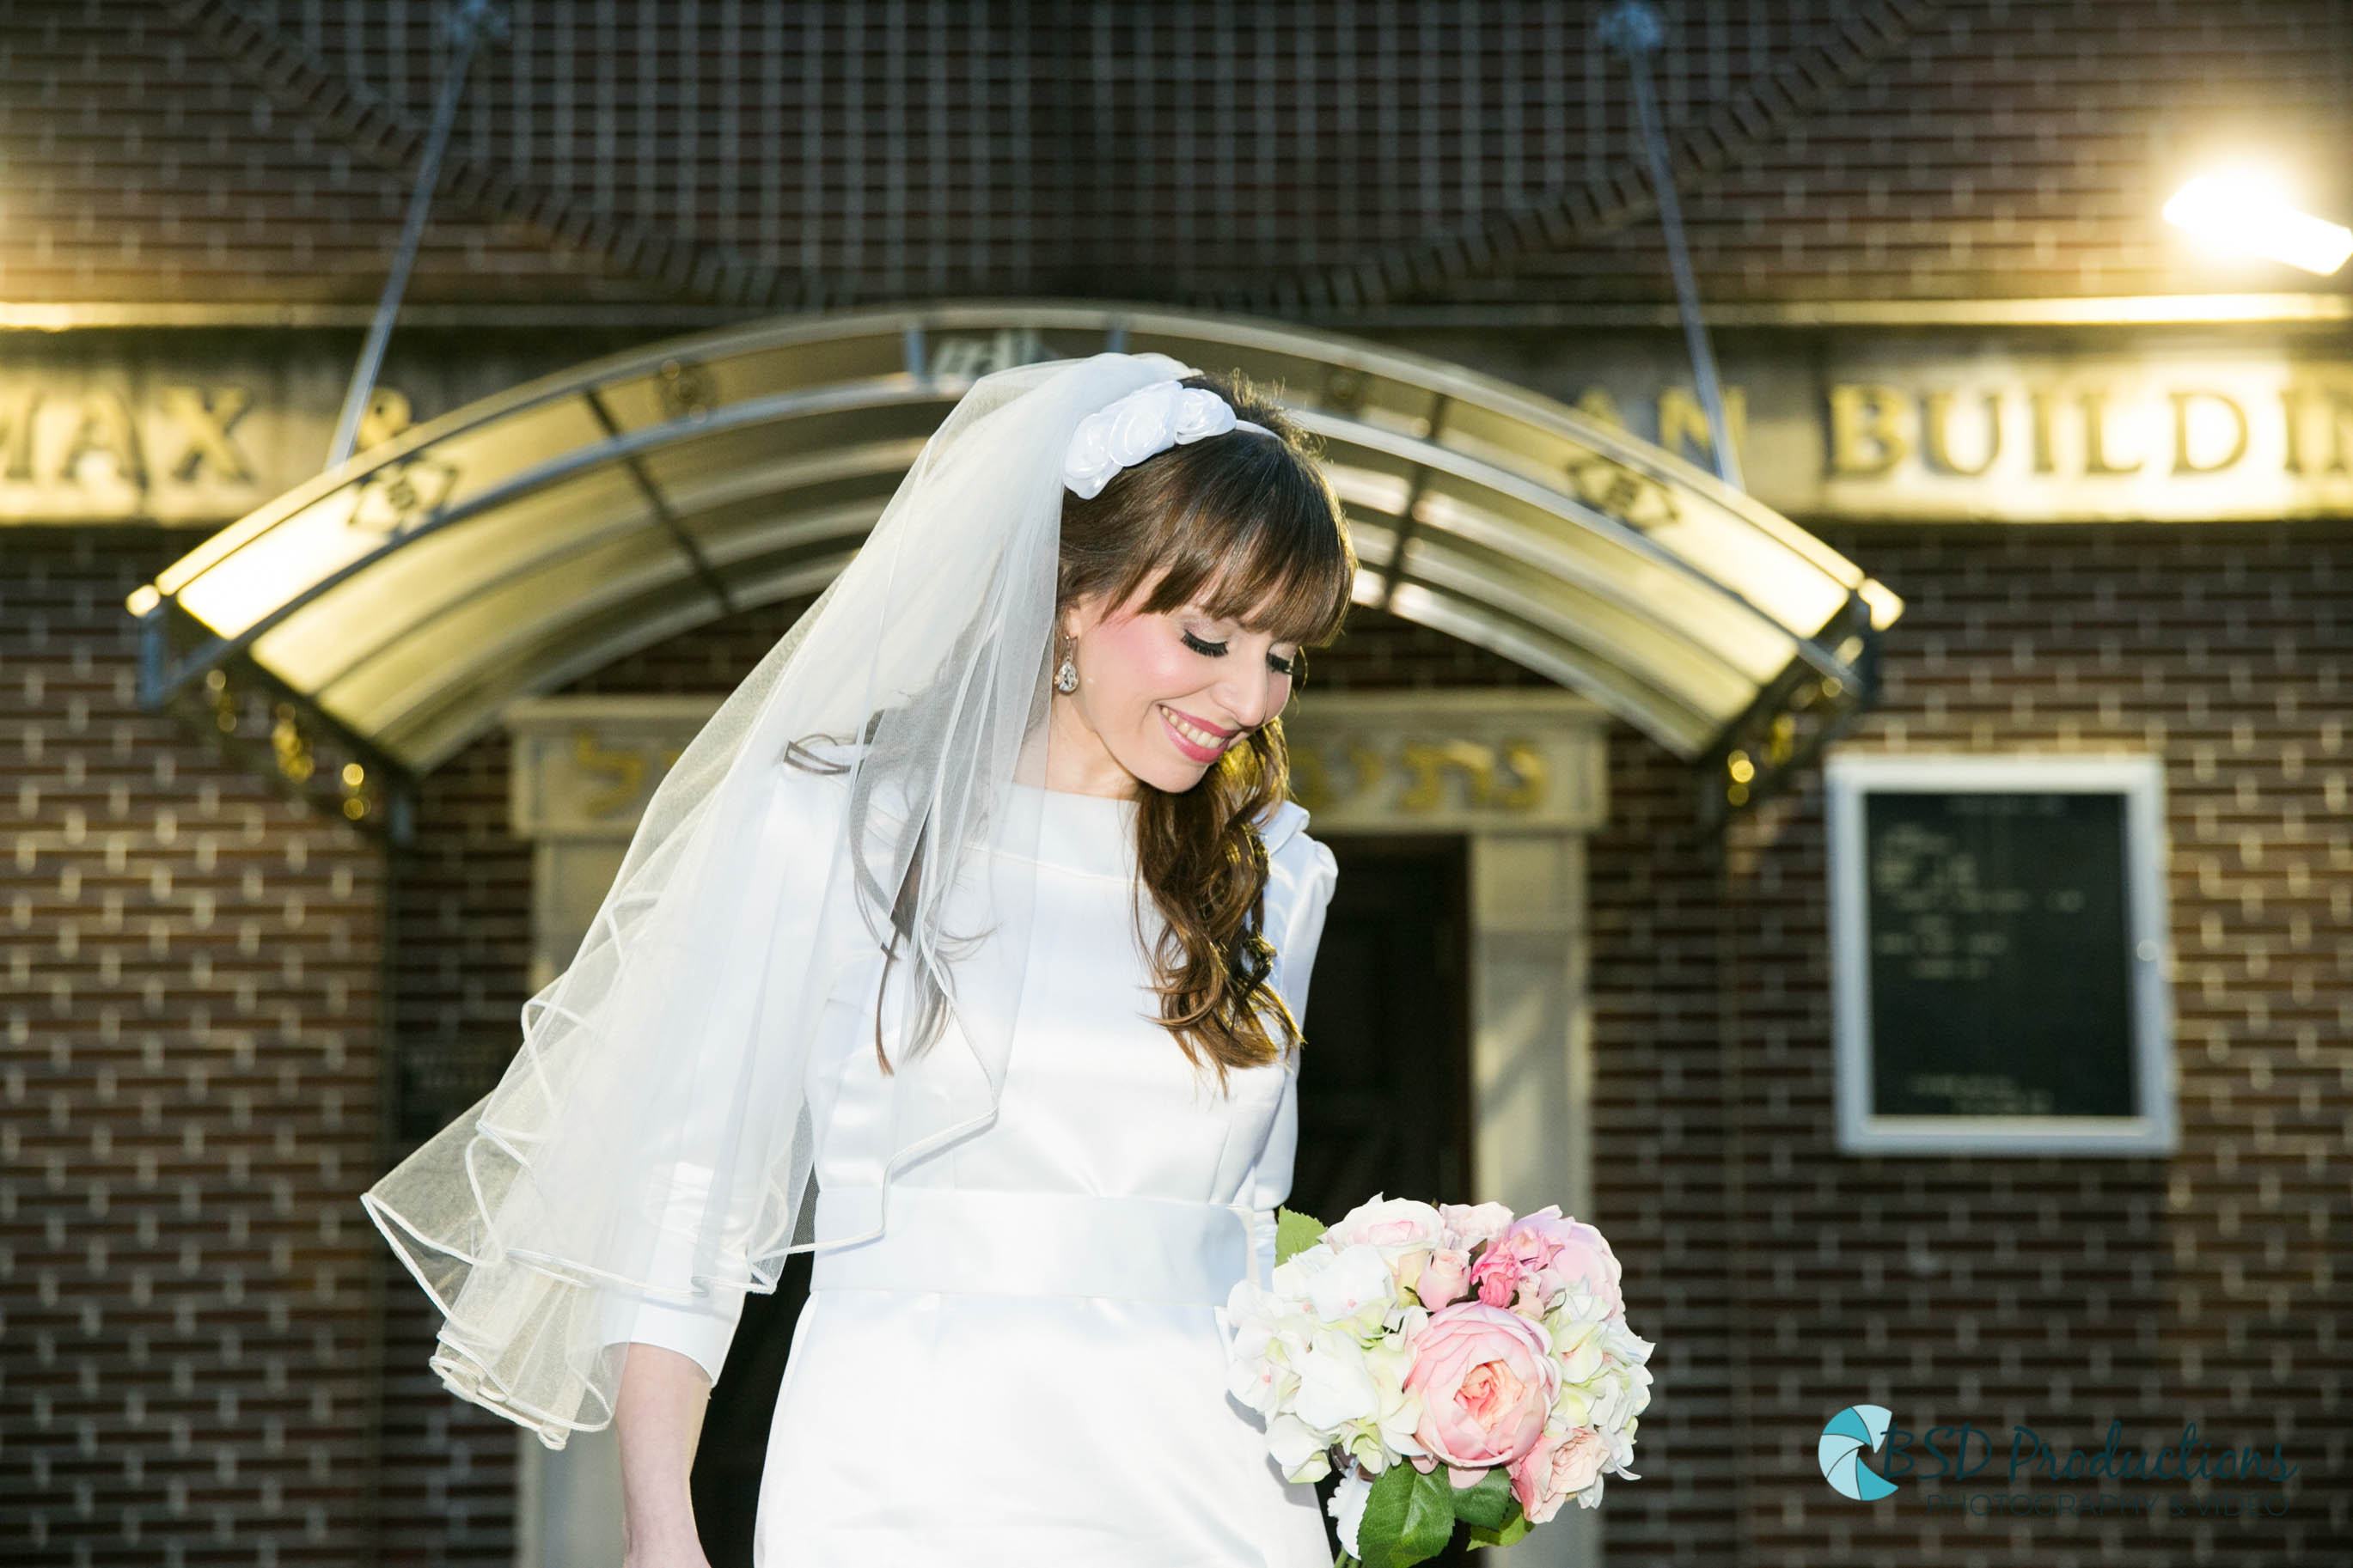 UH5A0103 Wedding – BSD Productions Photography